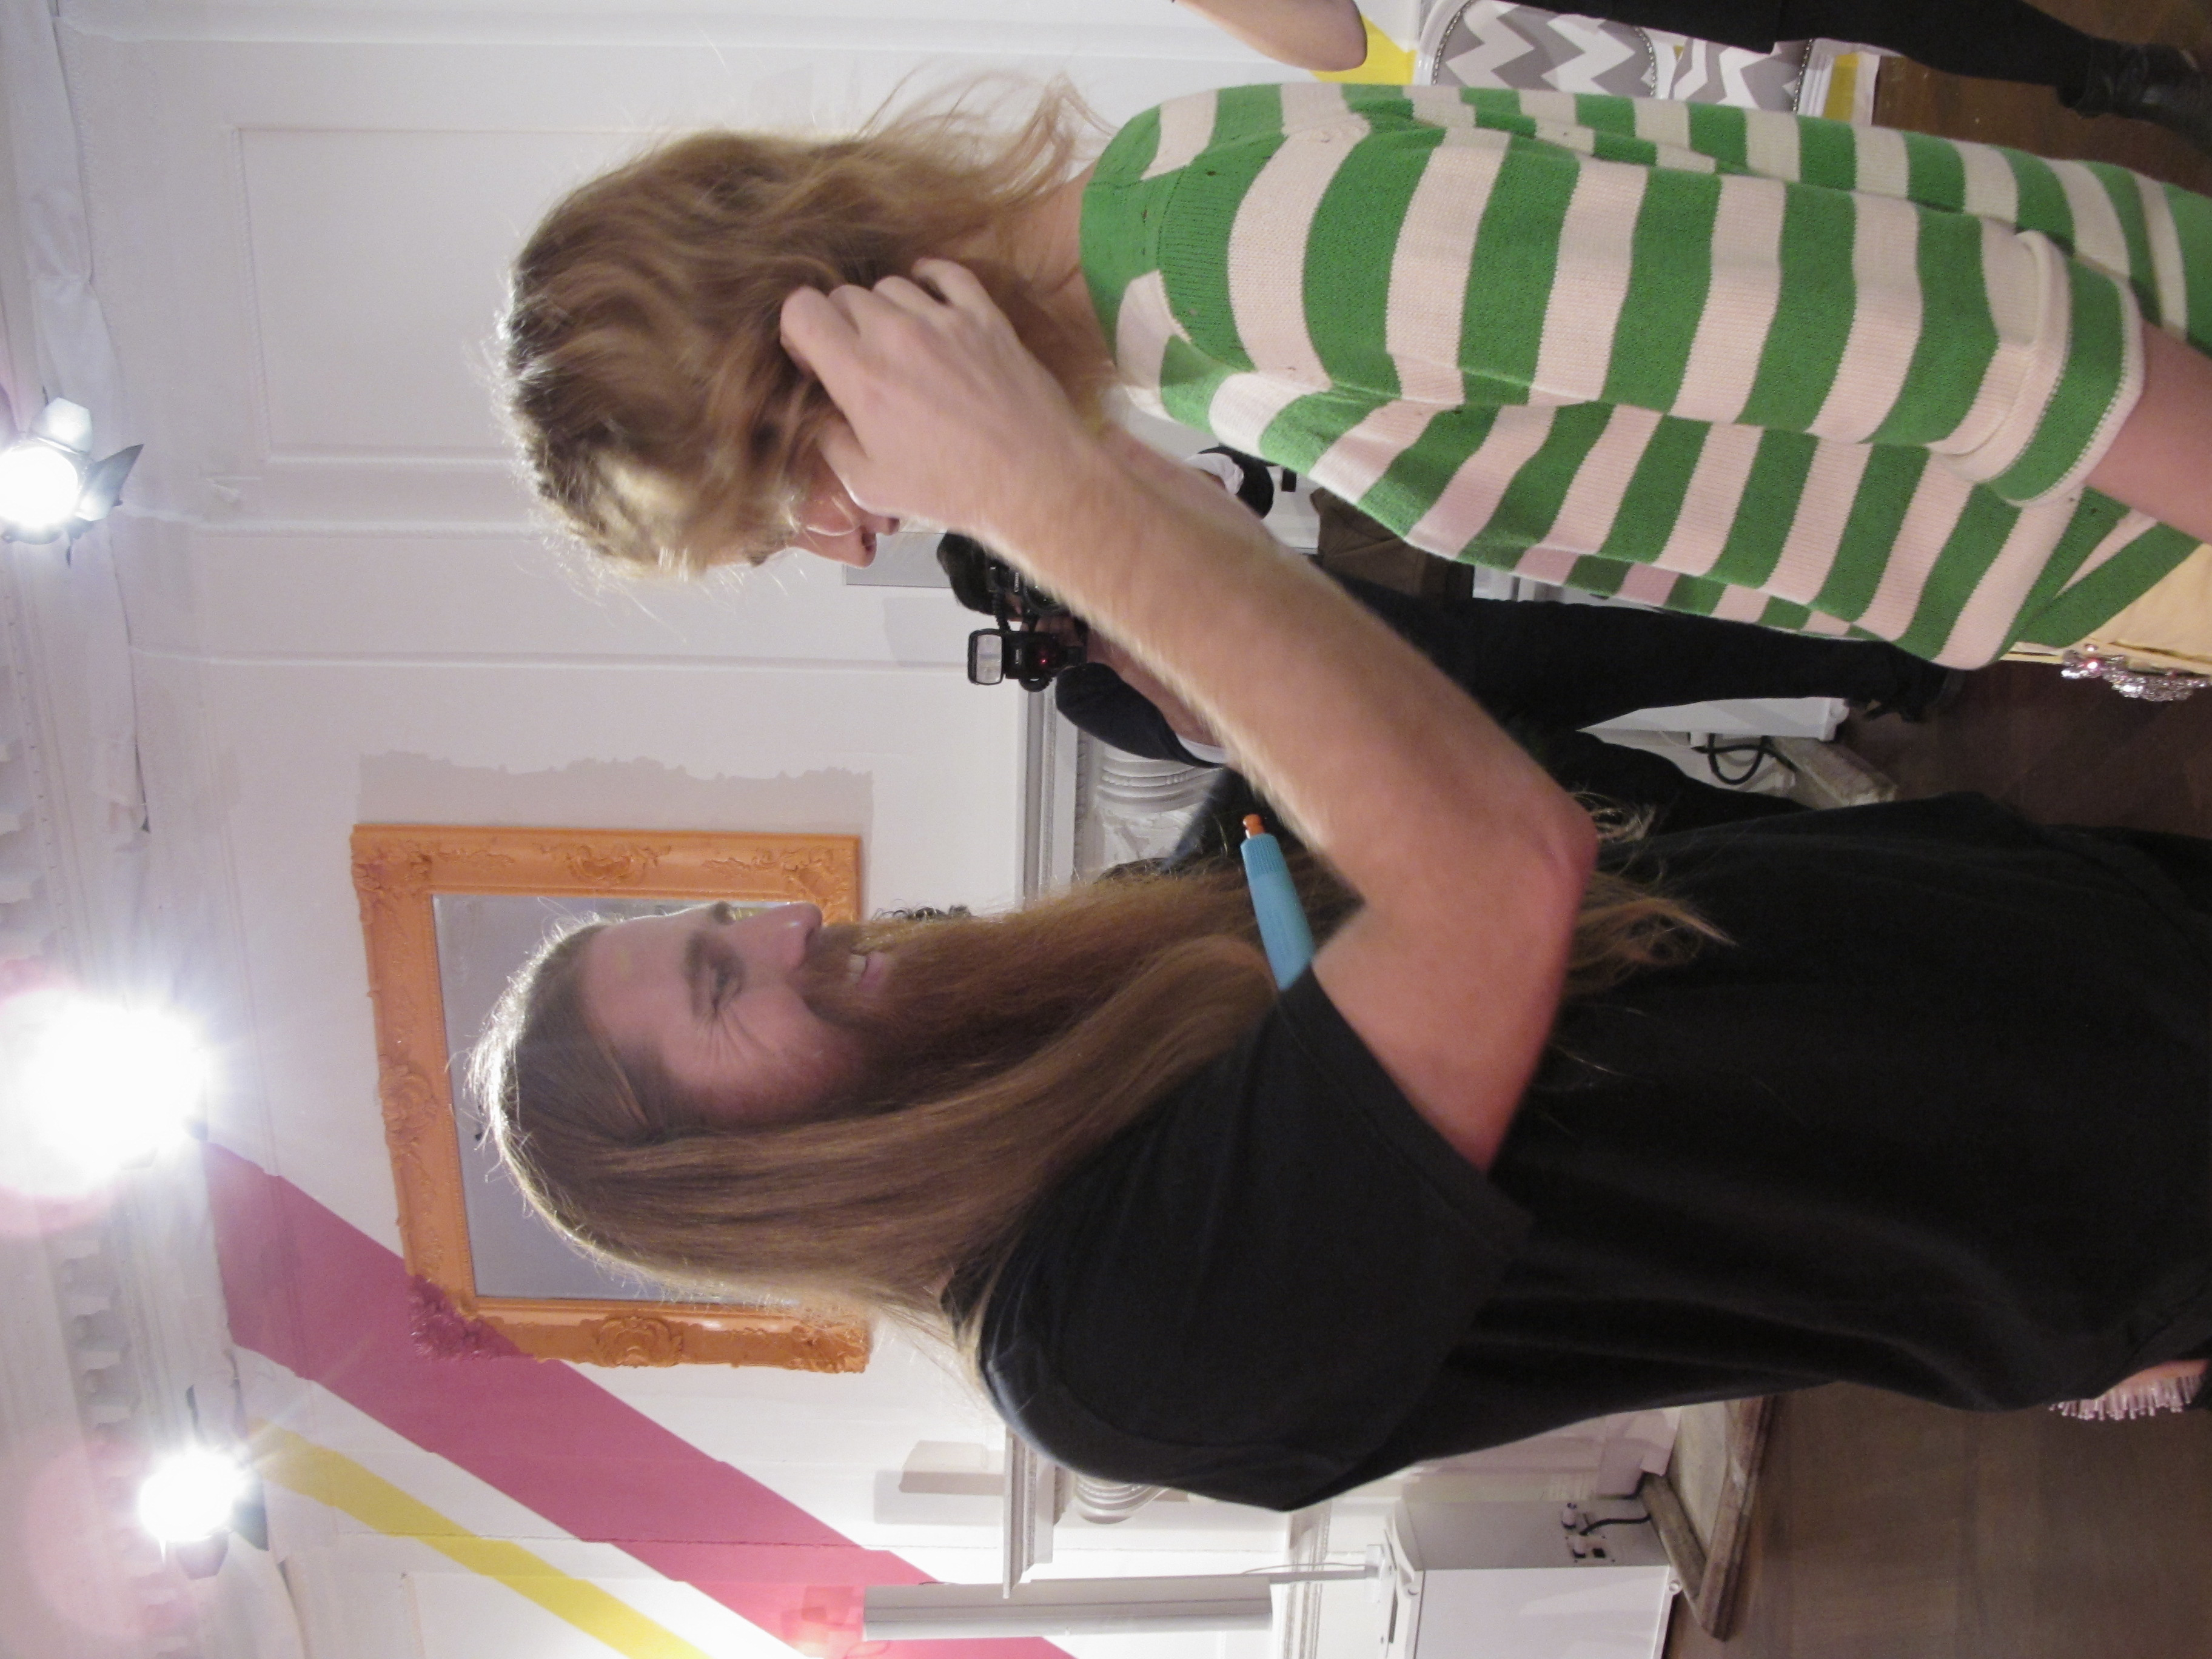 Lead stylist for Moroccanoil Duffy backstage at Juicy Couture's spring 2012 presentation